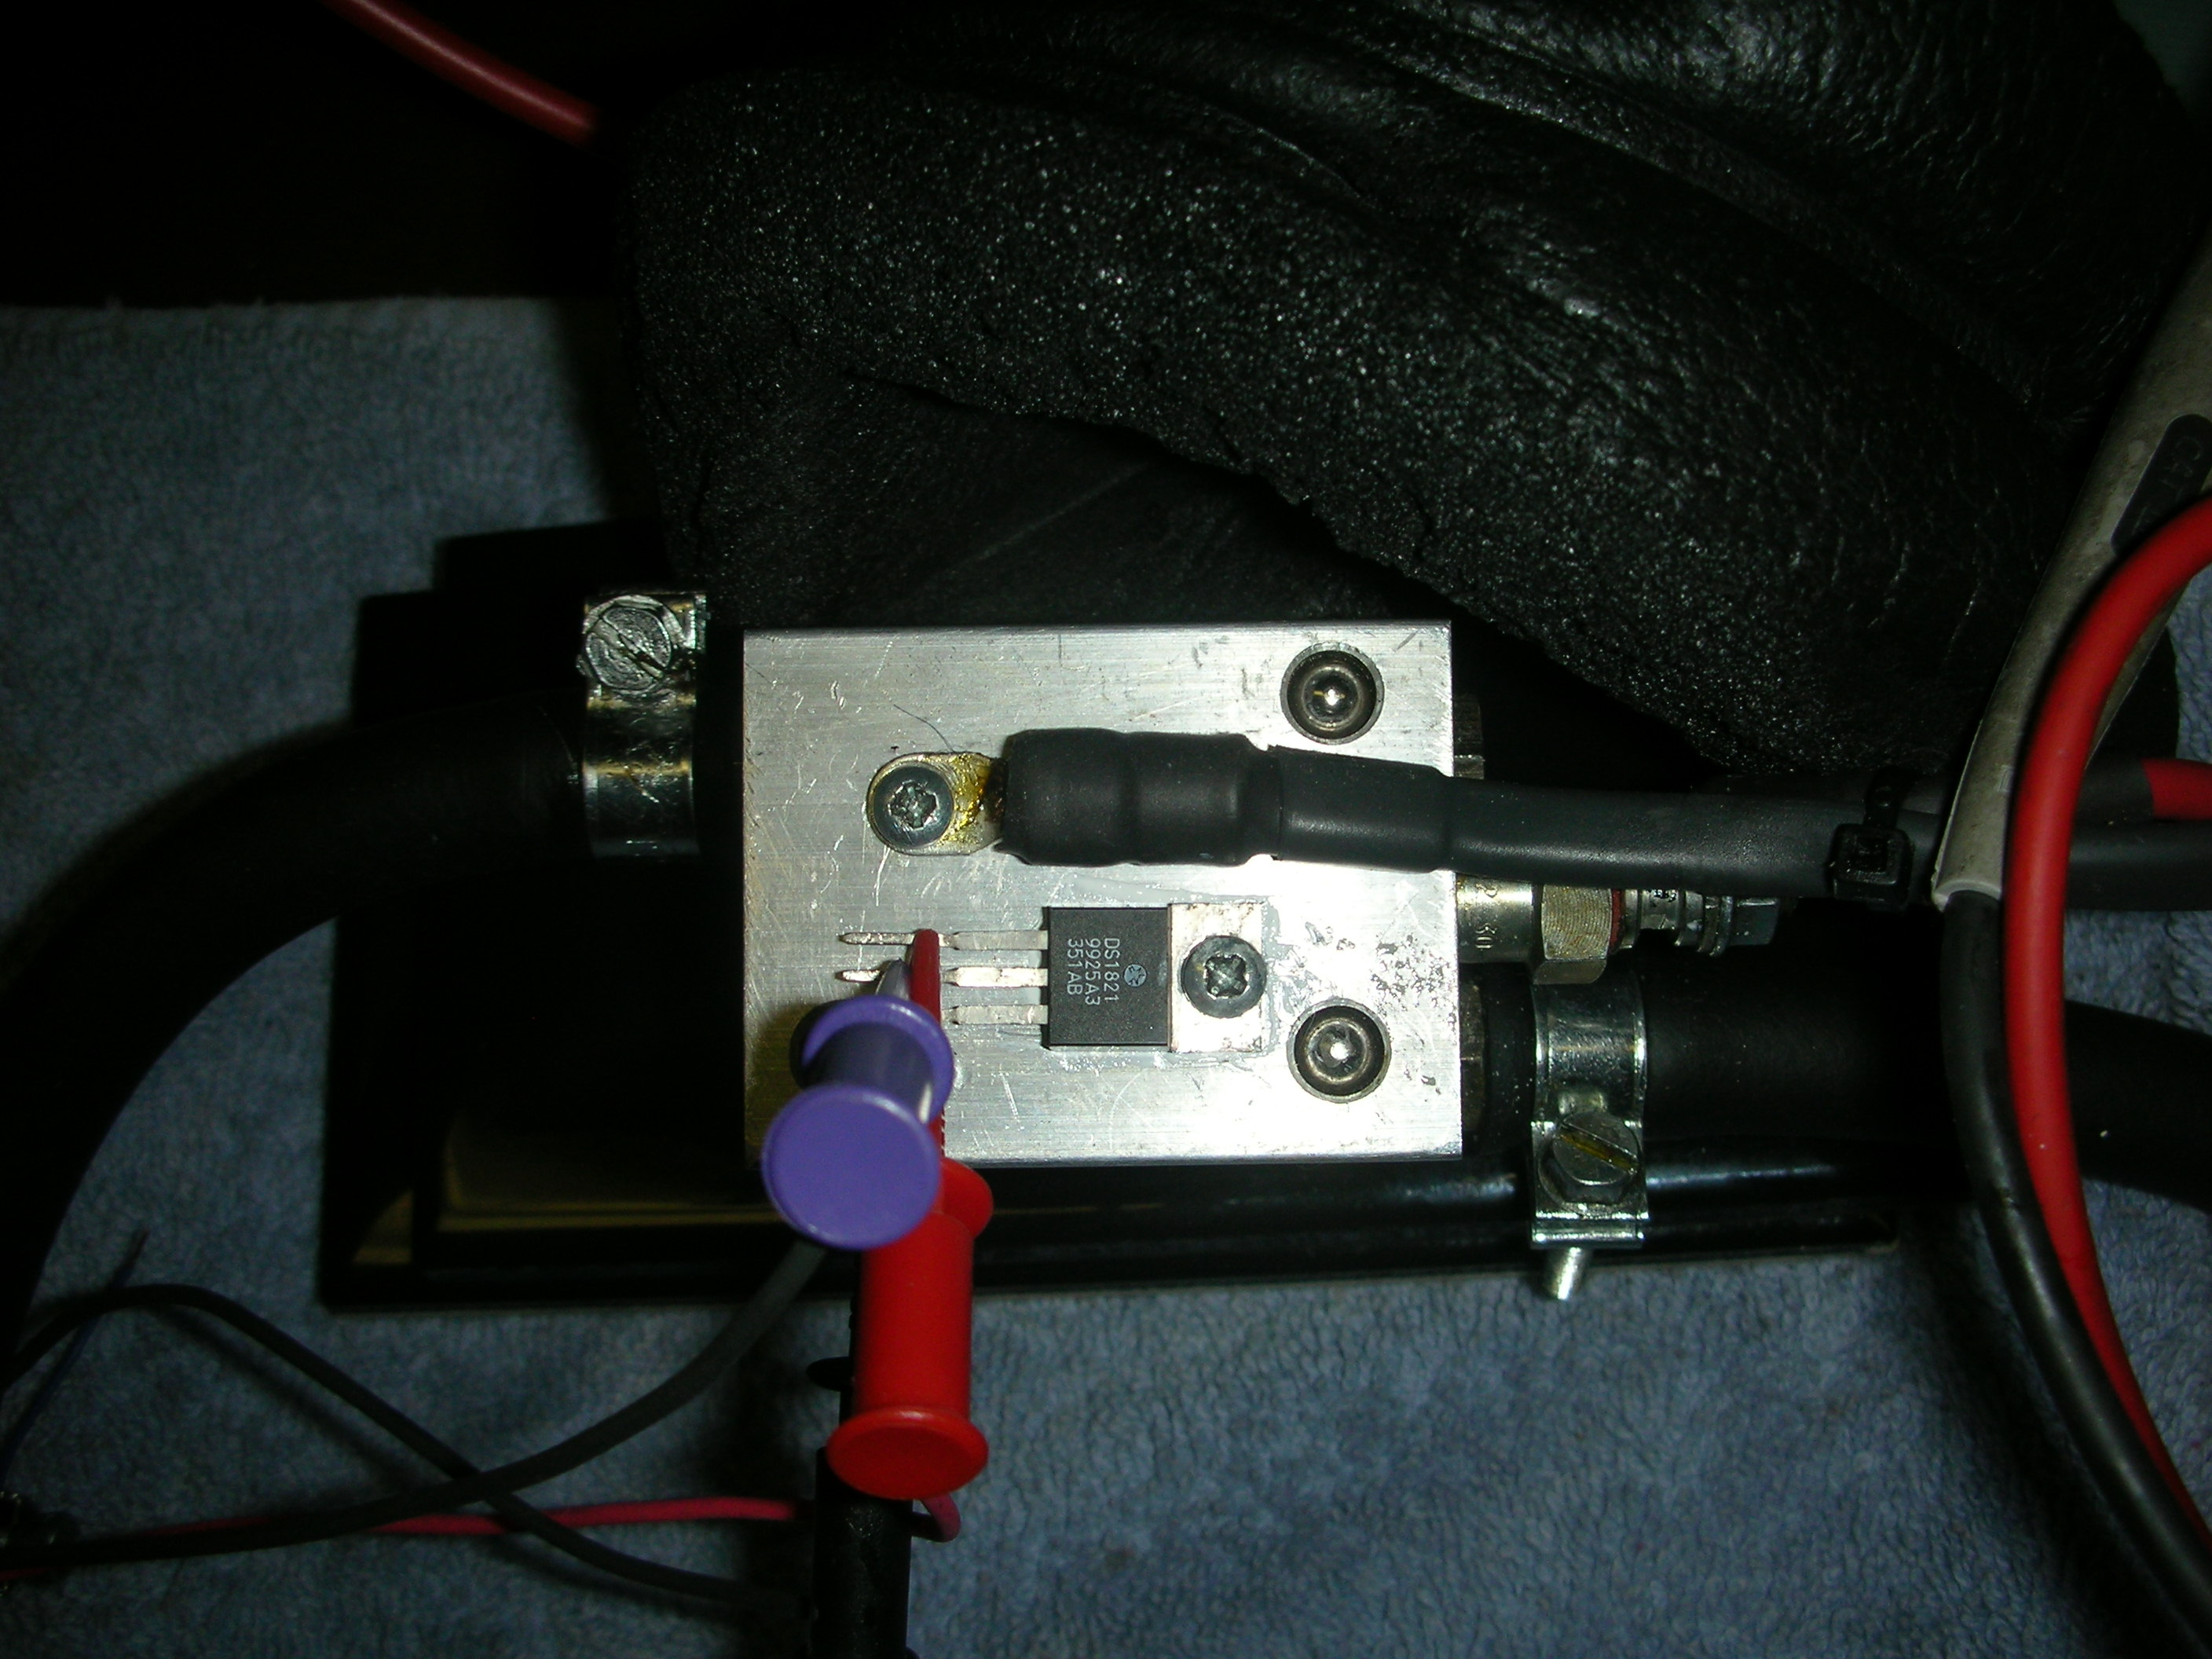 DSCN4358.JPG 813.87 KiB Viewed 336 times.  File comment: Inline Glow Plug Heater - Dallas DS1821 Thermostat.